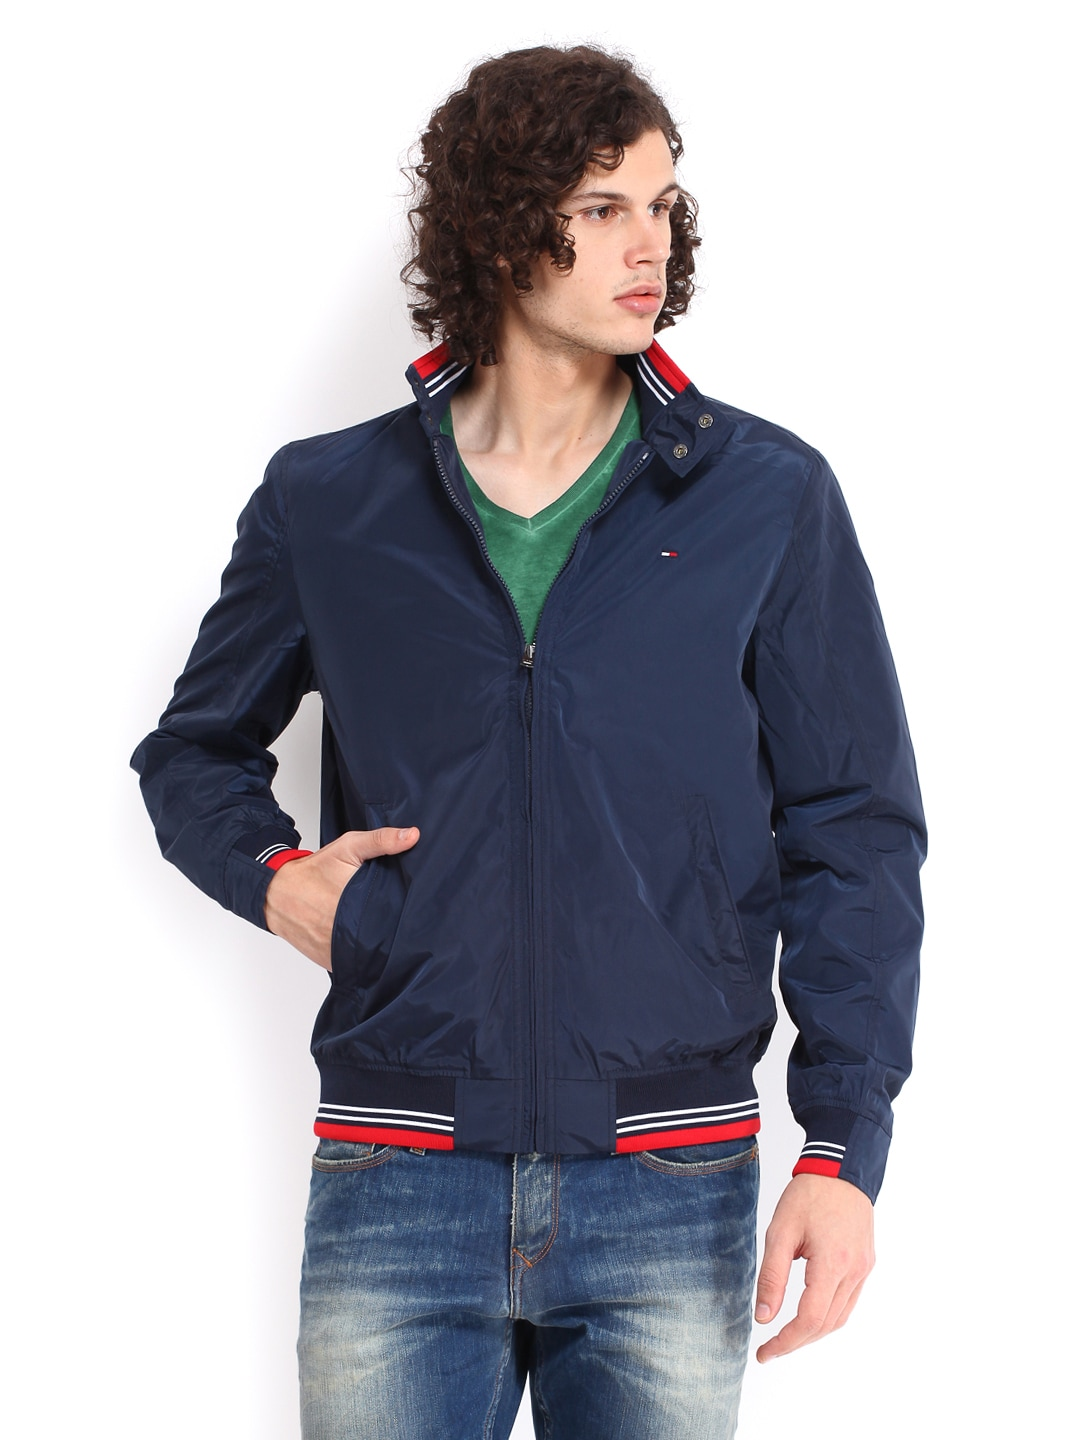 Tommy Hilfiger A4amo001 Men Navy Chase Bomber Jacket Best Price In